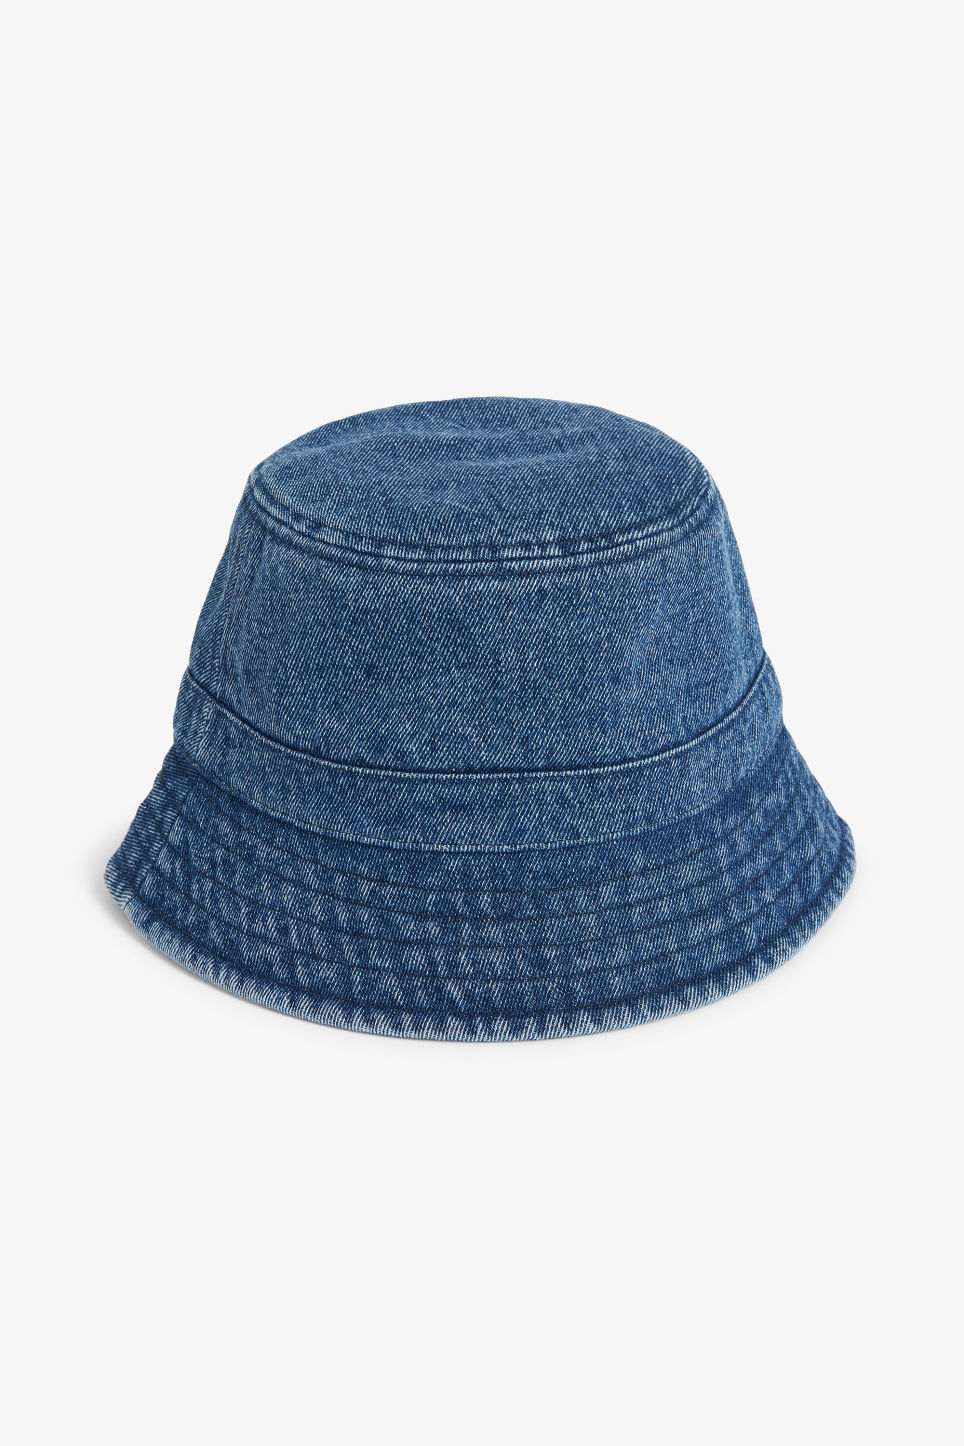 83cdae94a8922 Denim bucket hat - Mid blue - Hats